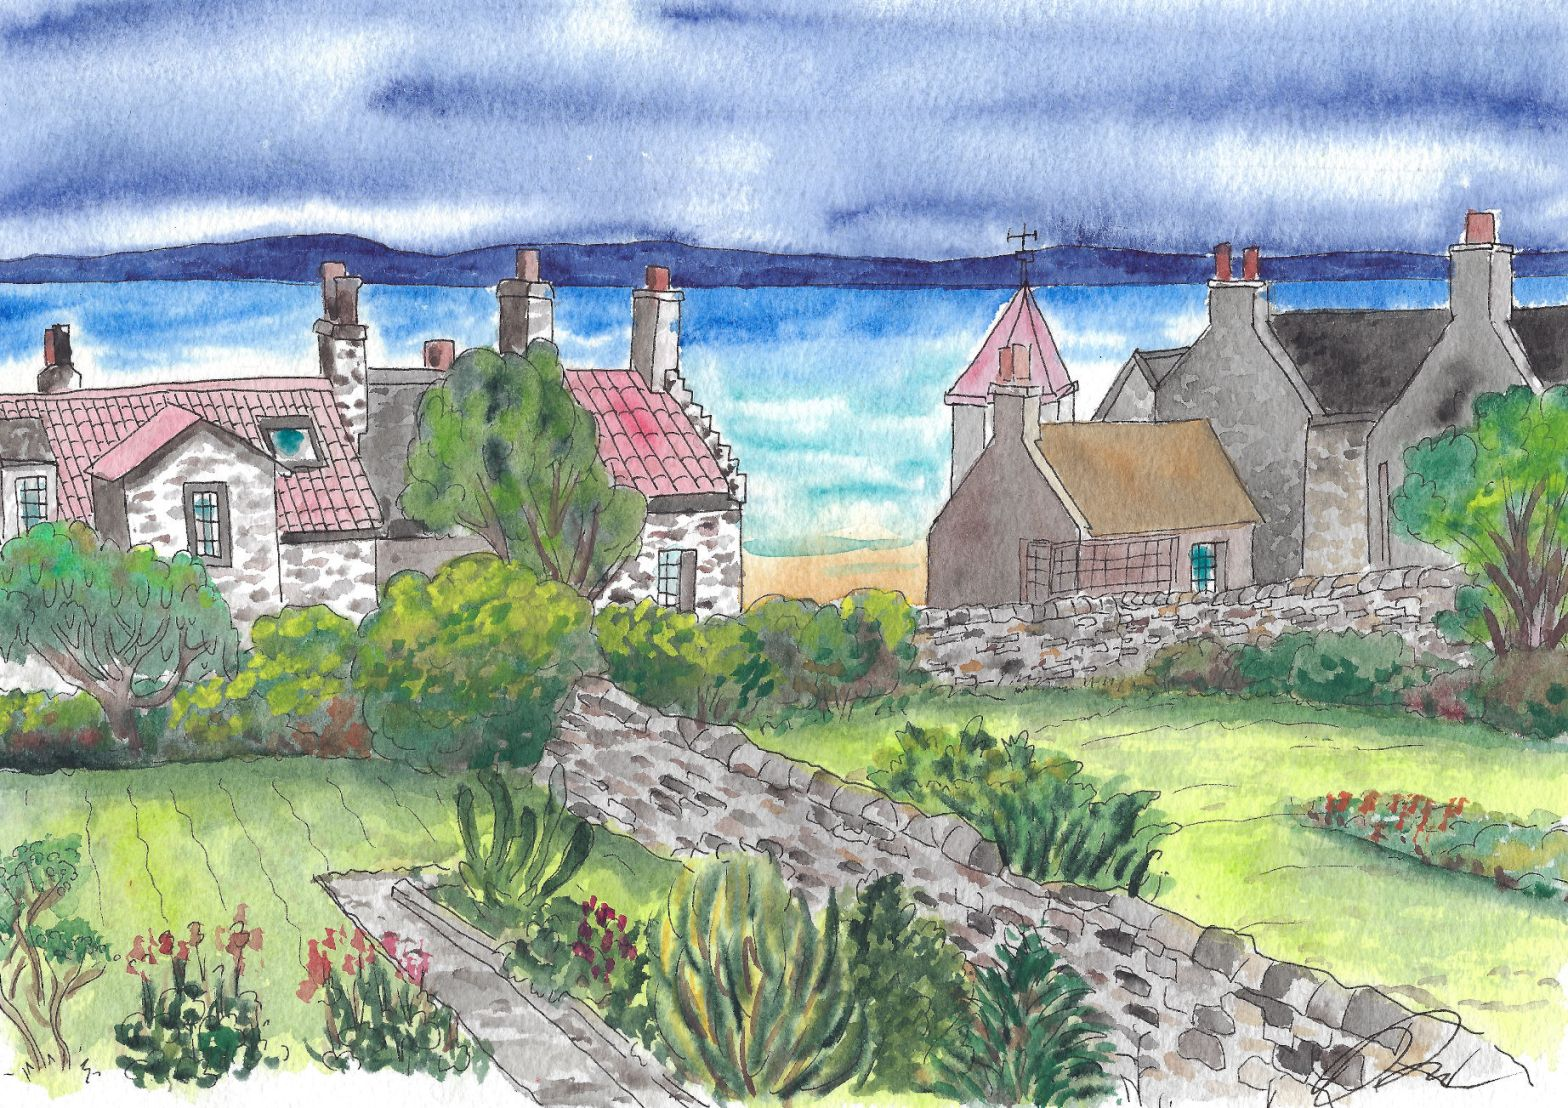 Watercolor of Elie village in Scotland with water in the background.